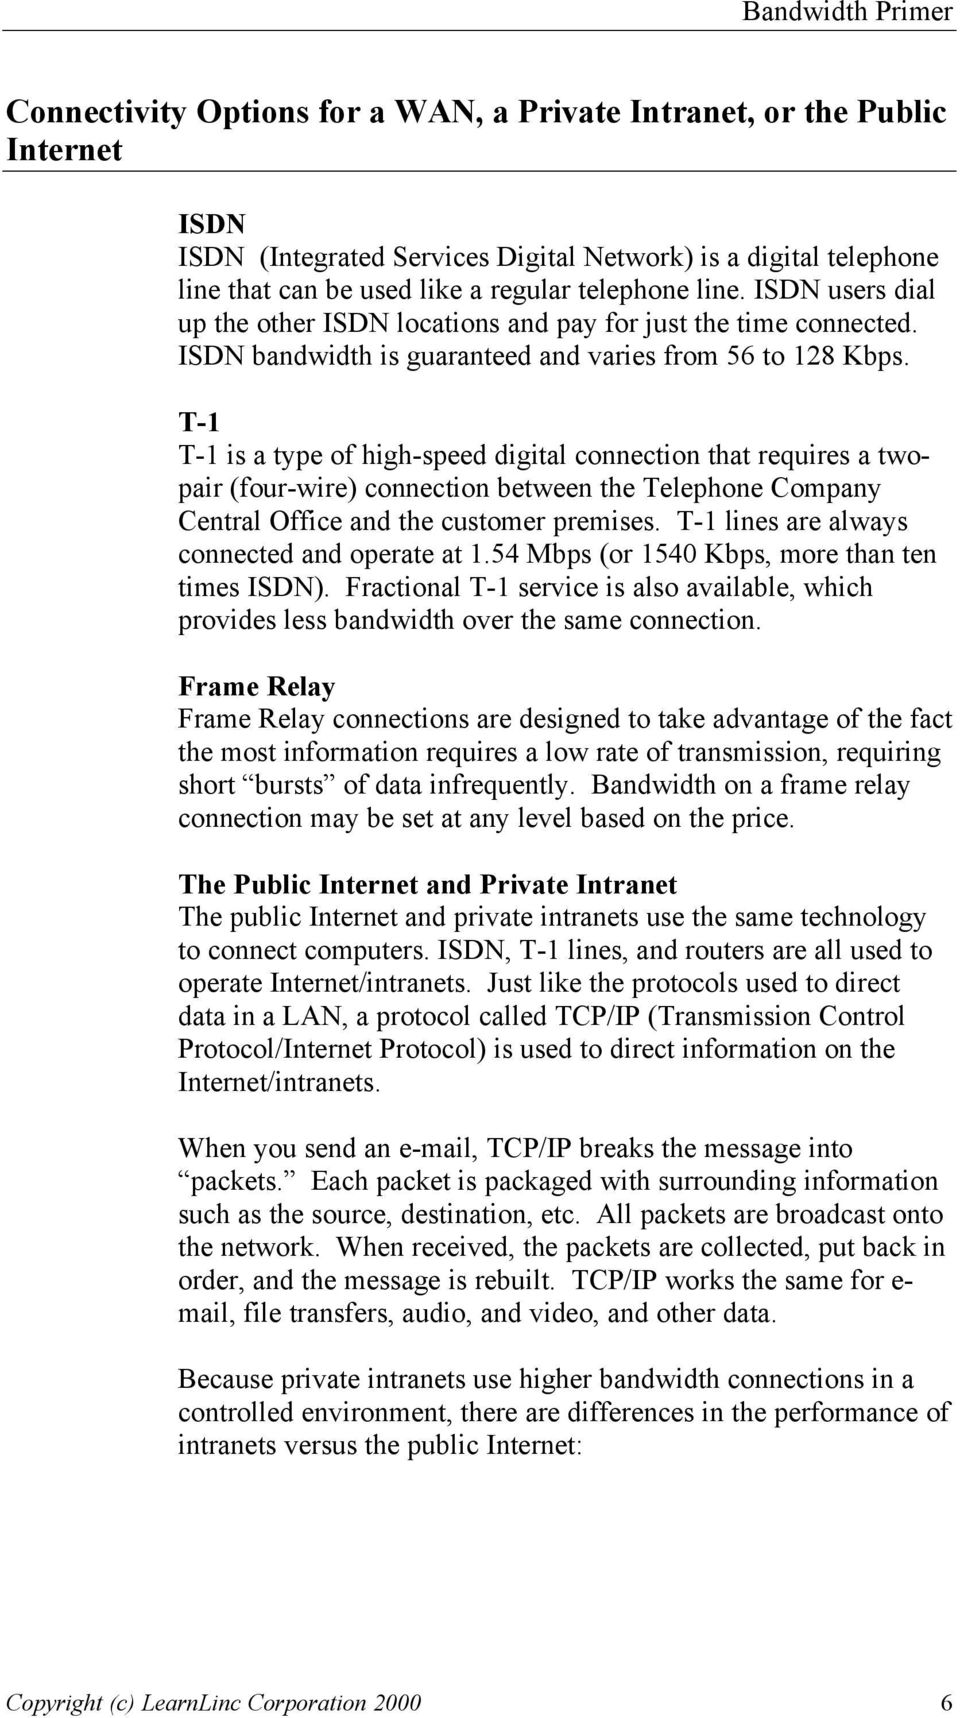 T-1 T-1 is a type of high-speed digital connection that requires a twopair (four-wire) connection between the Telephone Company Central Office and the customer premises.